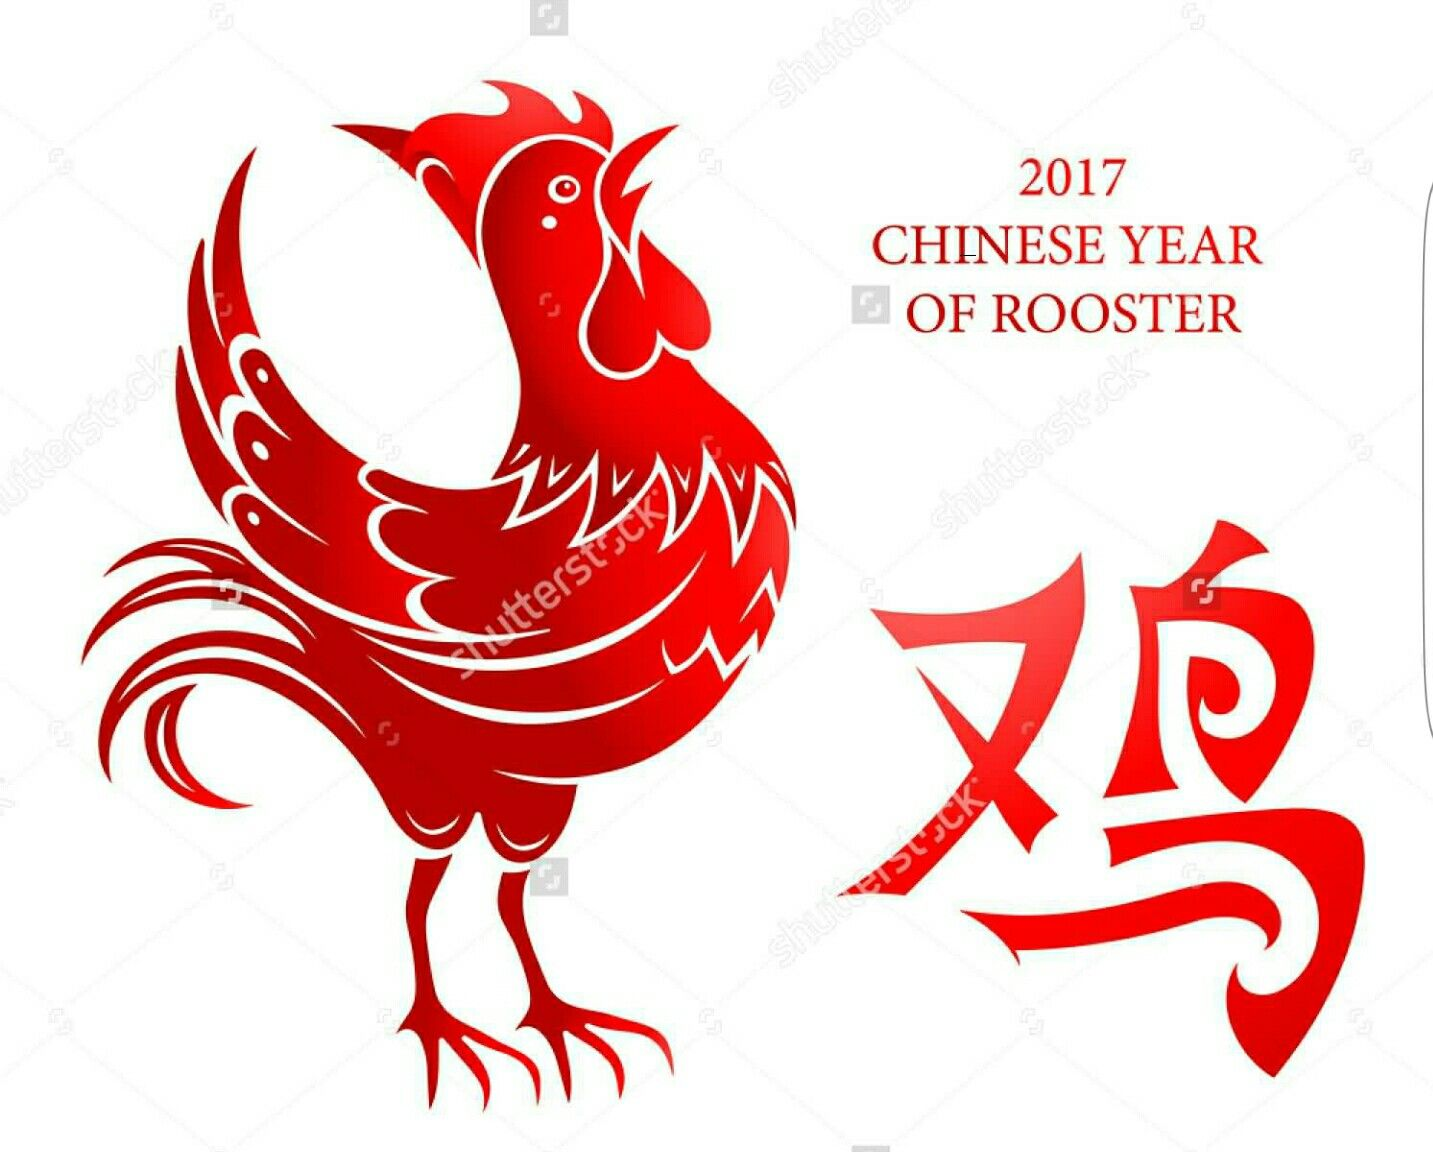 Every 12 years there is a Rooster year, beginning at